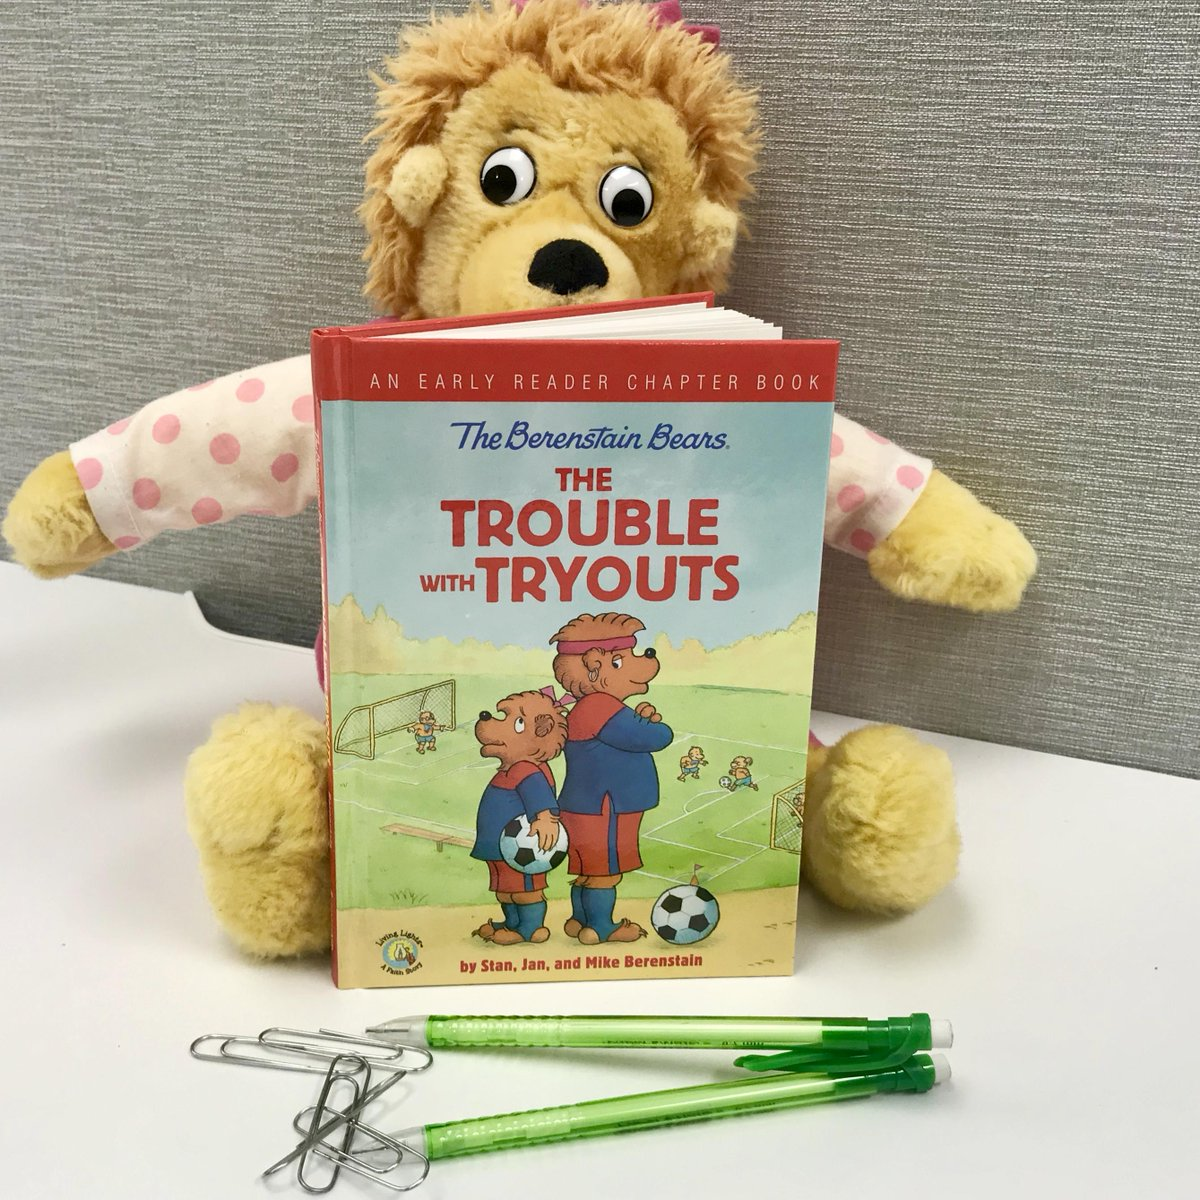 The story: Sister is fast and kicks the ball with great power. Yet, Mama, Papa, and Brother think she has set her sights too high ... or does she?  If your kiddo is ready for their first chapter book, this @berenstainbears book would be a great surprise. https://t.co/3XXhJLrYEW https://t.co/bkUsbS8Clk